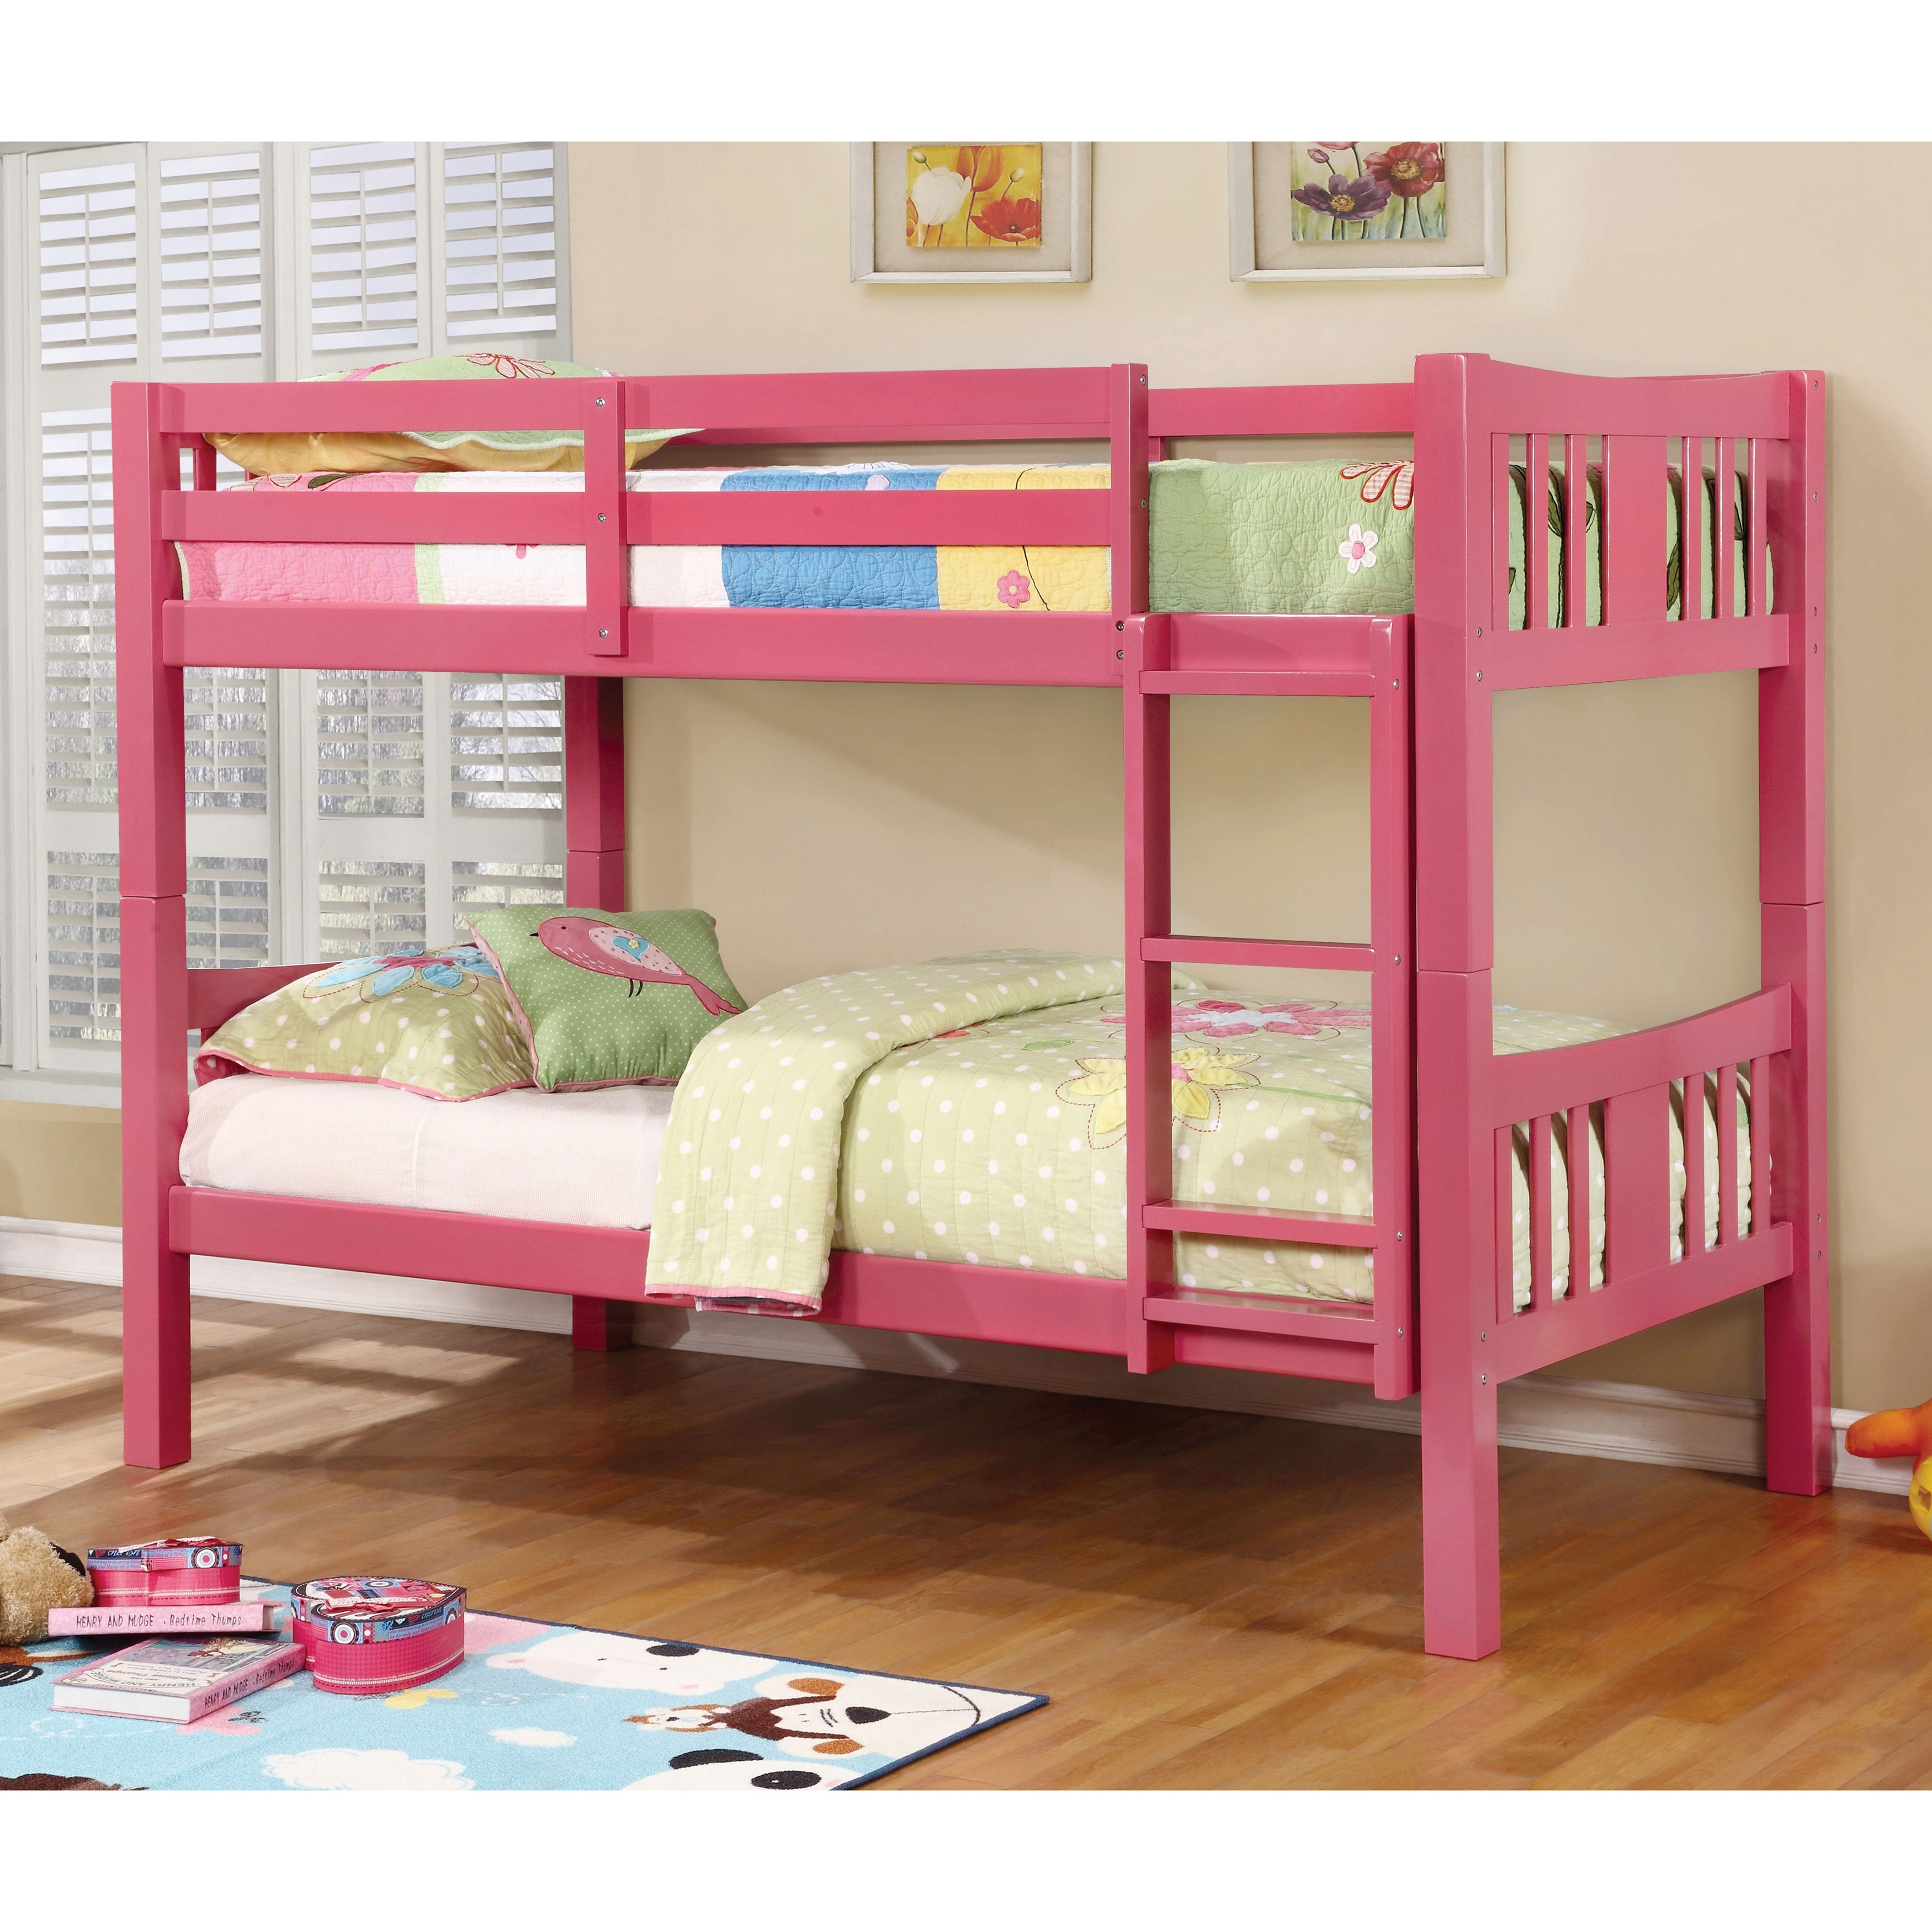 Furniture of America Pello Twin over Twin Bunk Bed (Pink)